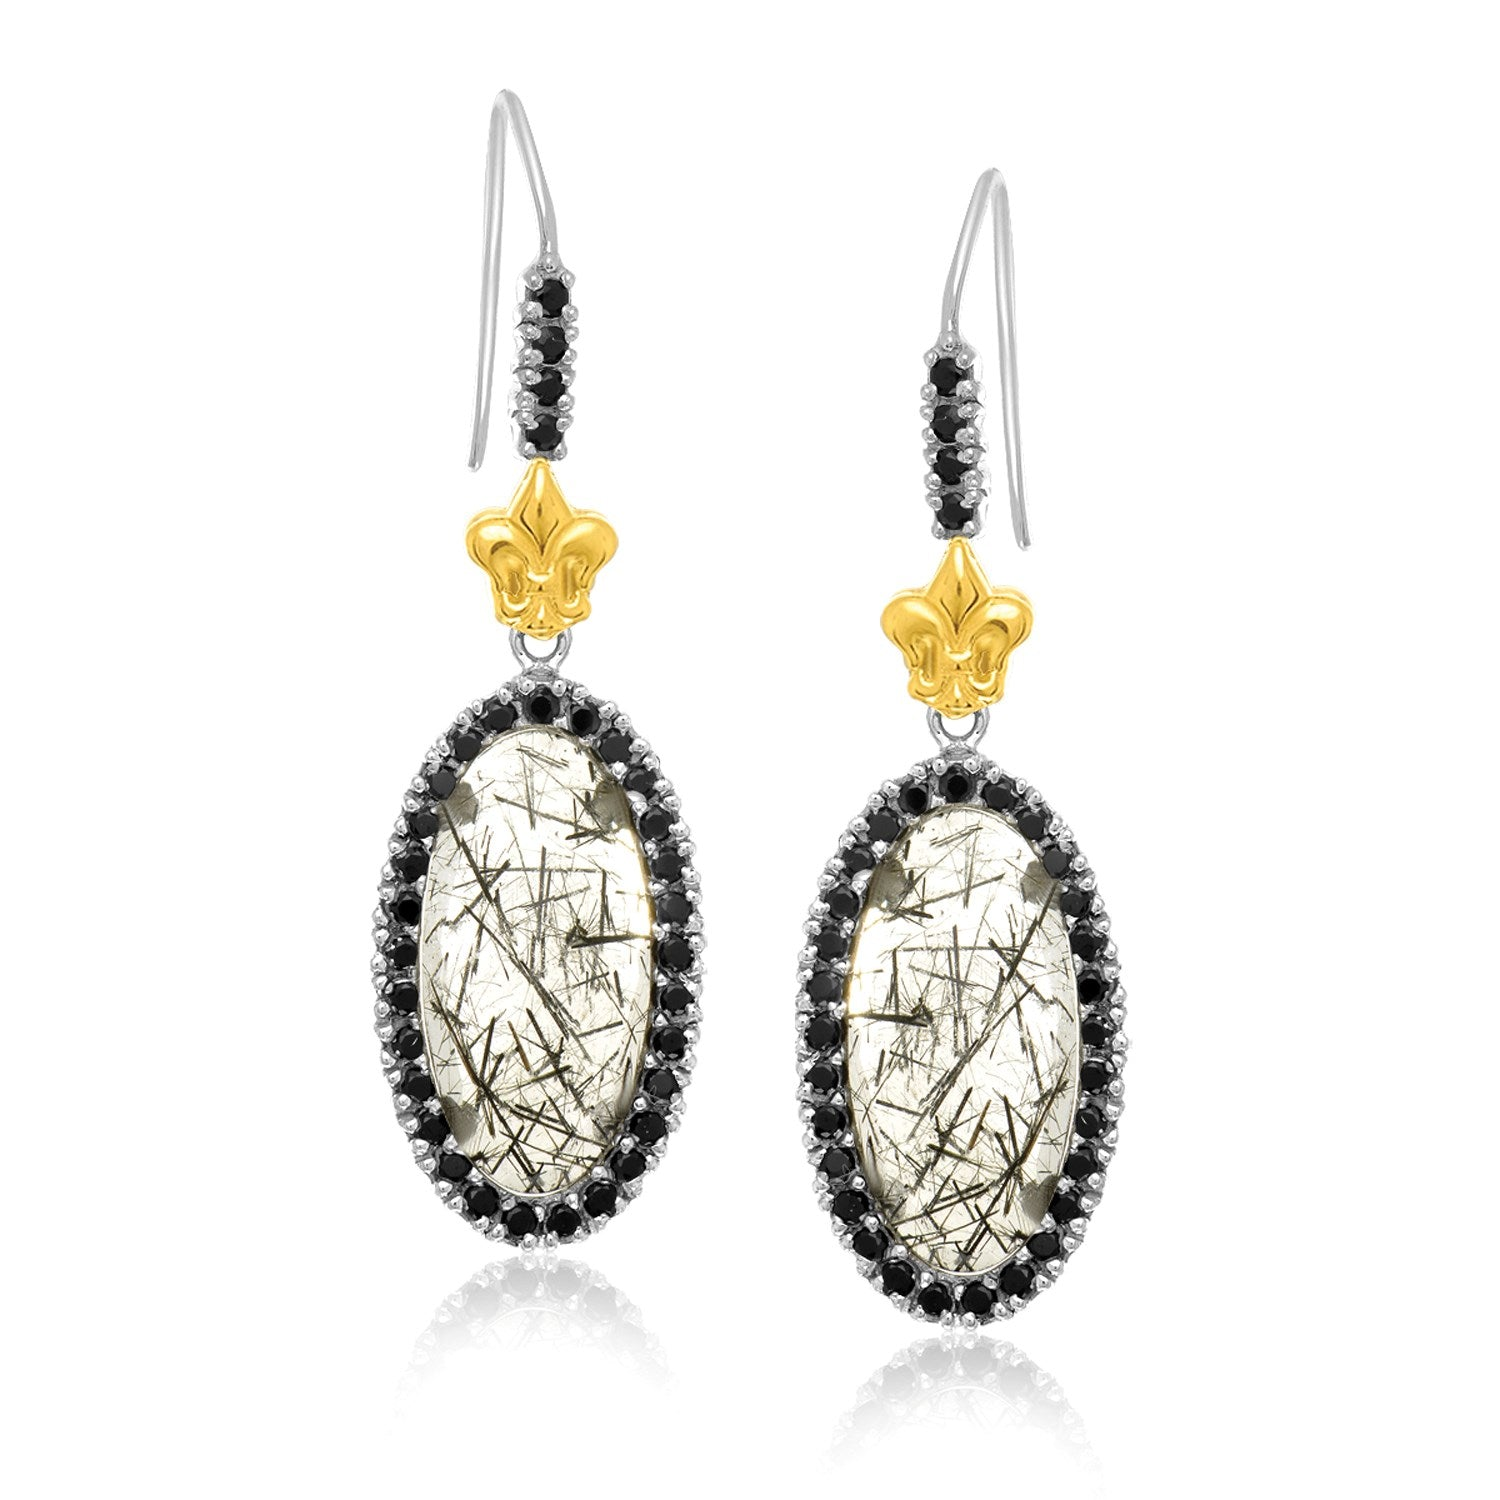 Unique Modern Paris Style 18K Yellow Gold & Sterling Silver Rutilated Quartz Fleur De Lis Drop Earrings